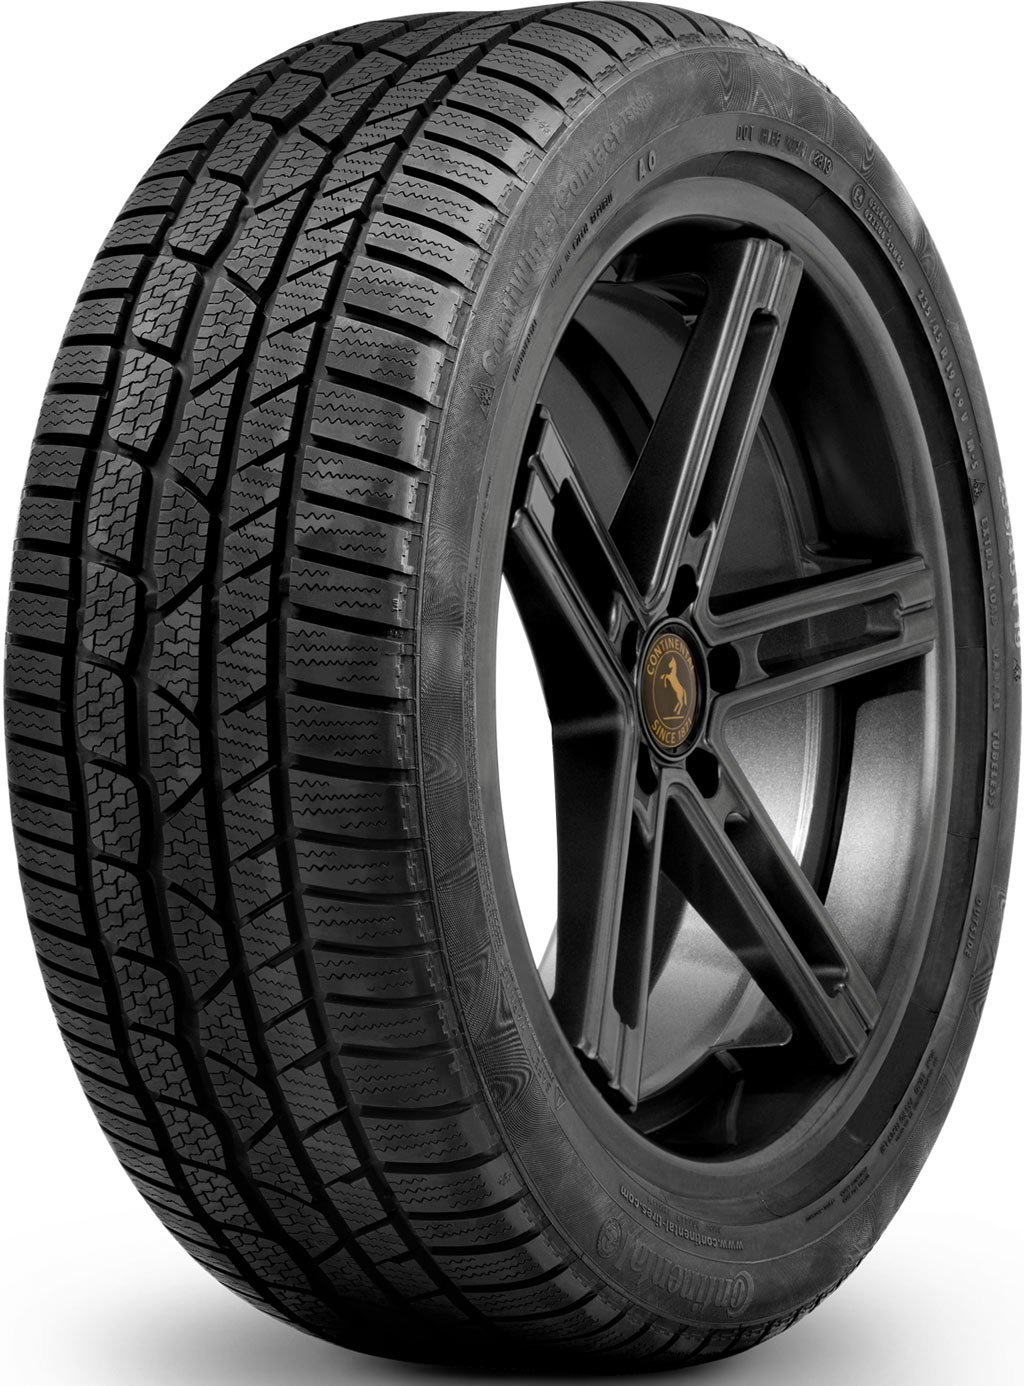 continental contiwintercontact ts 830 p ssr tire rating overview videos reviews available. Black Bedroom Furniture Sets. Home Design Ideas